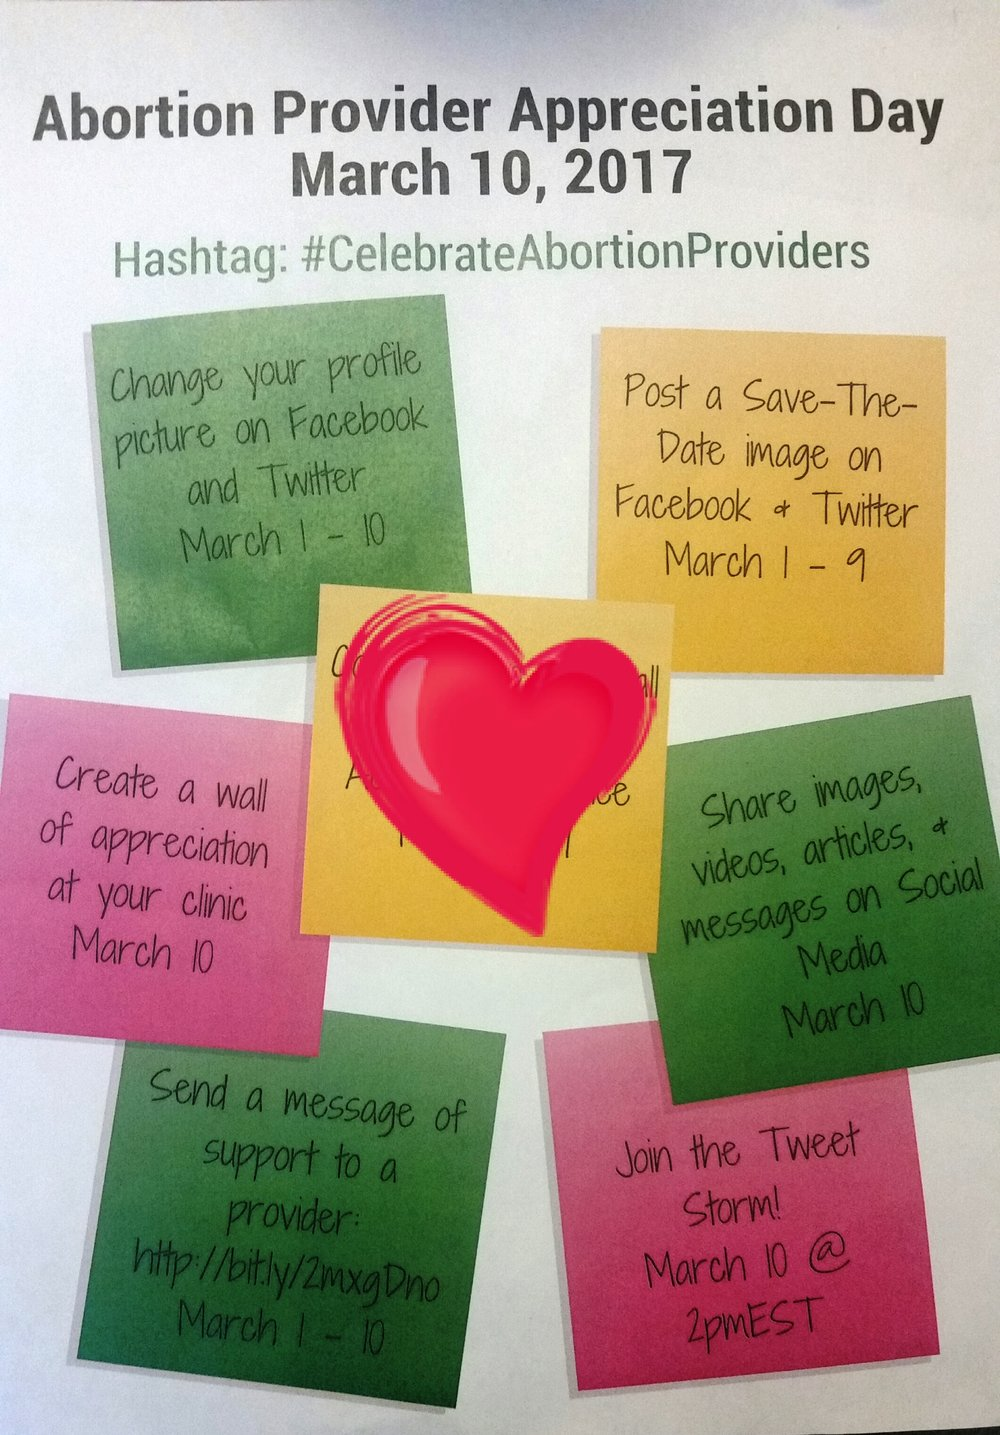 March 10 abortion provider appreciation day tips.jpg